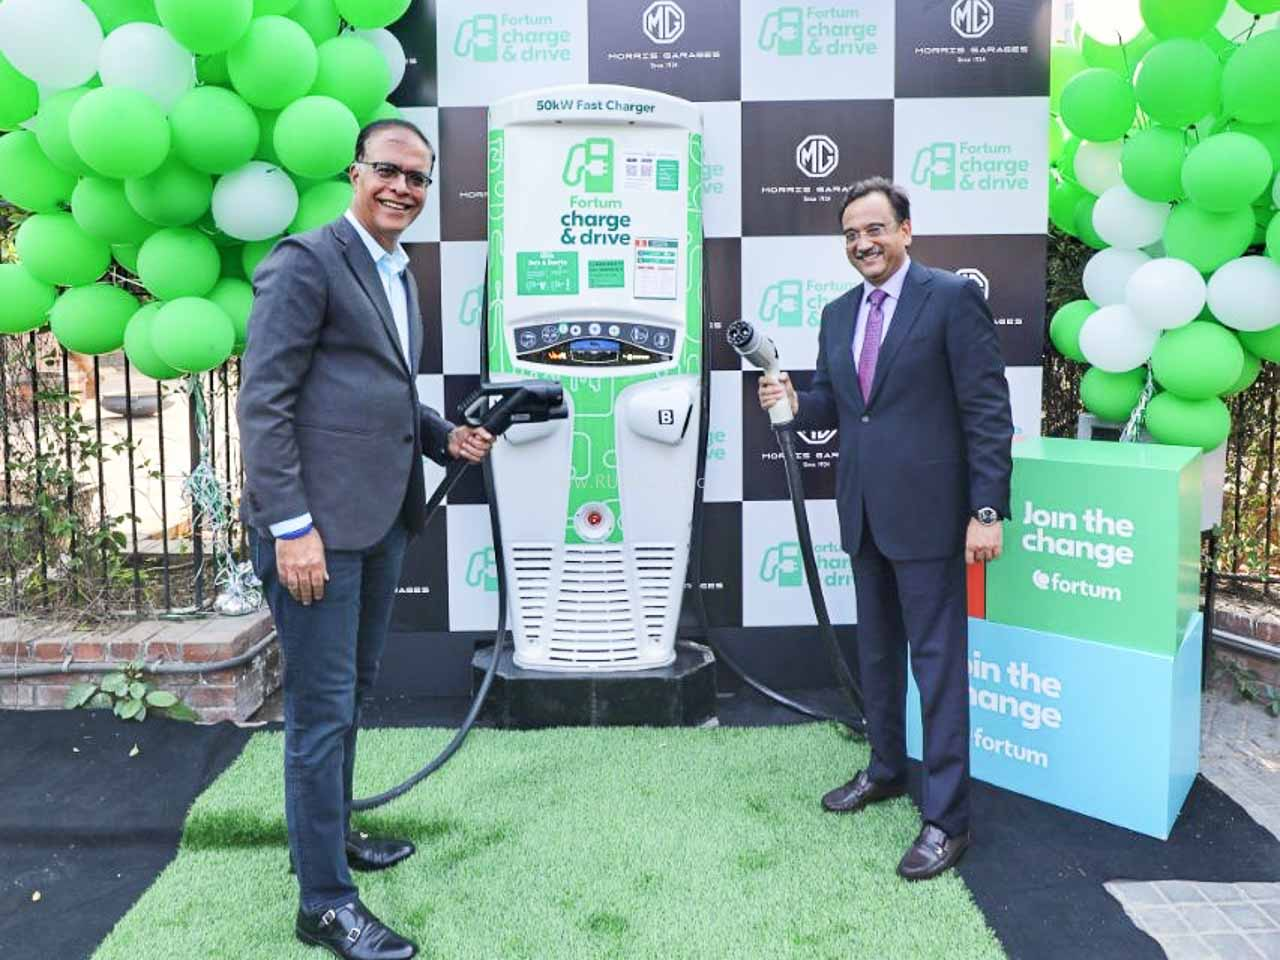 Tata Power to install Superfast Chargers for MG ZS EV, other electric cars